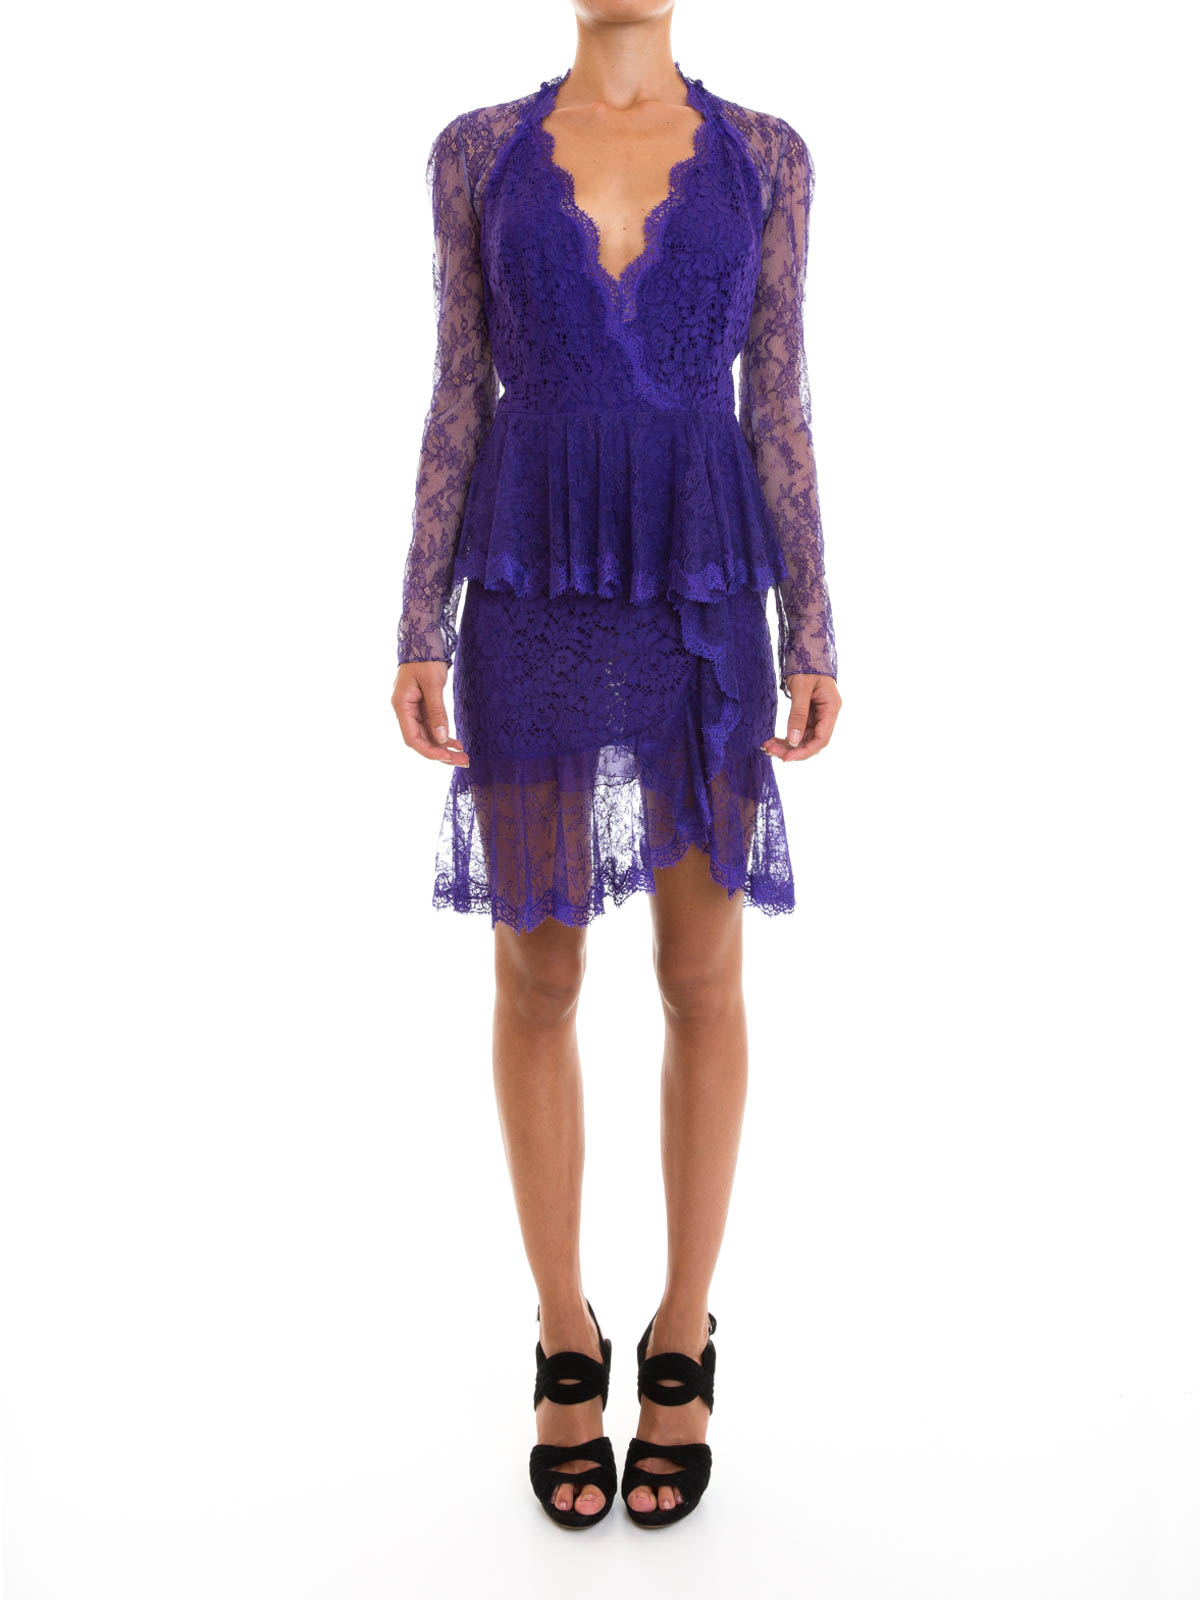 Sheer floral lace ruffle dress by Roberto Cavalli - cocktail dresses ...